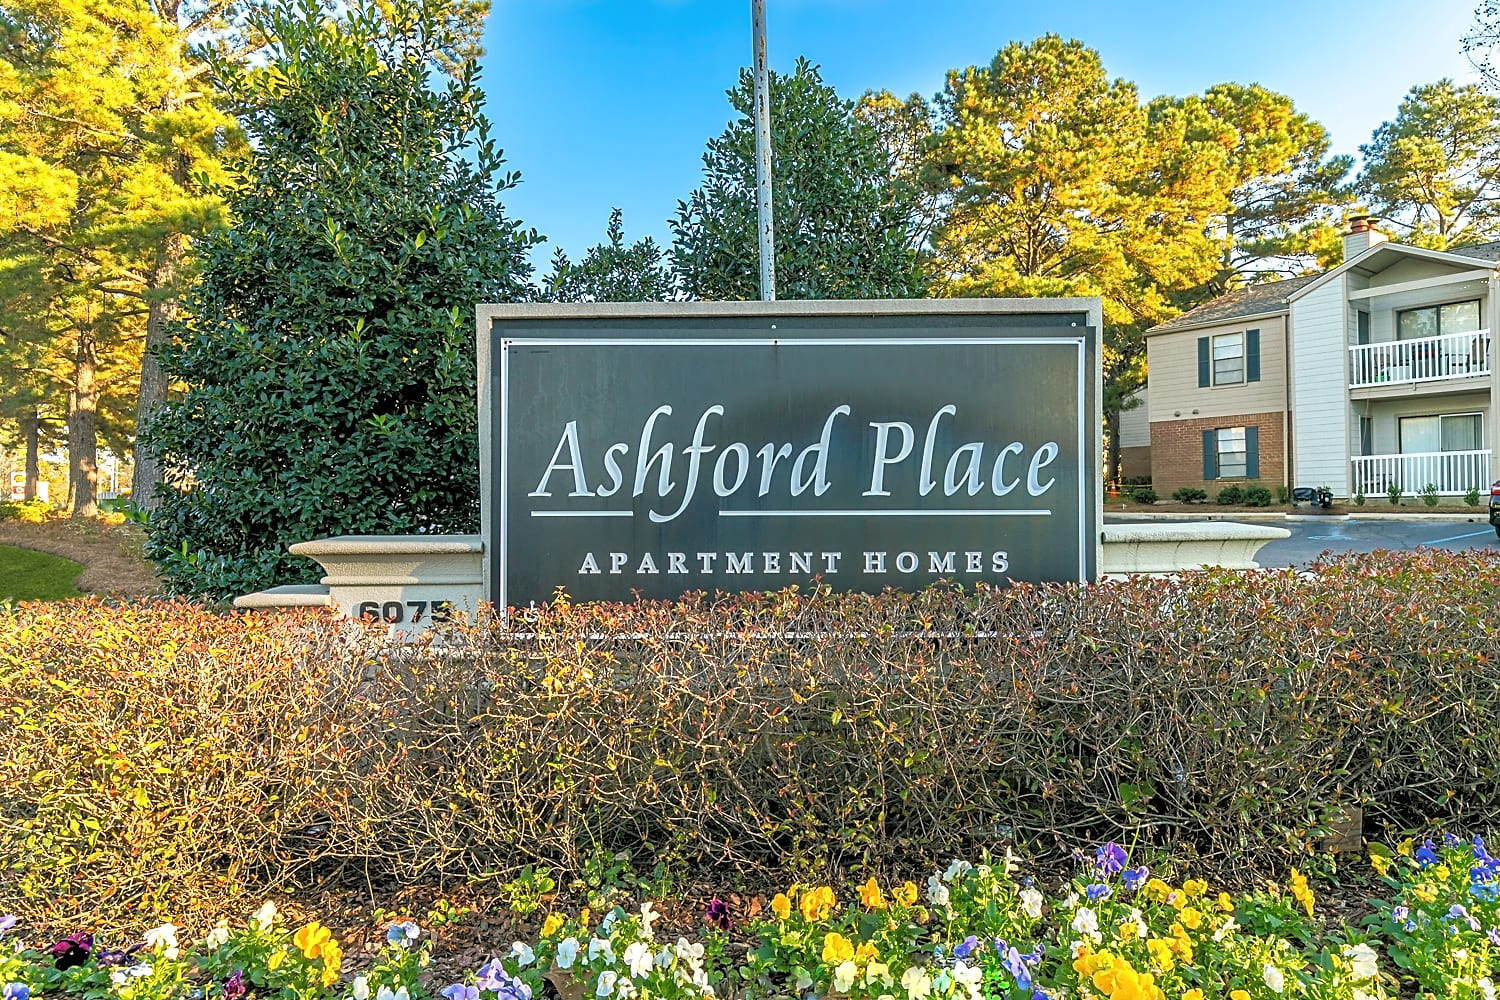 Apartments Near Spring Hill Ashford Place Apartment Homes for Spring Hill College Students in Mobile, AL